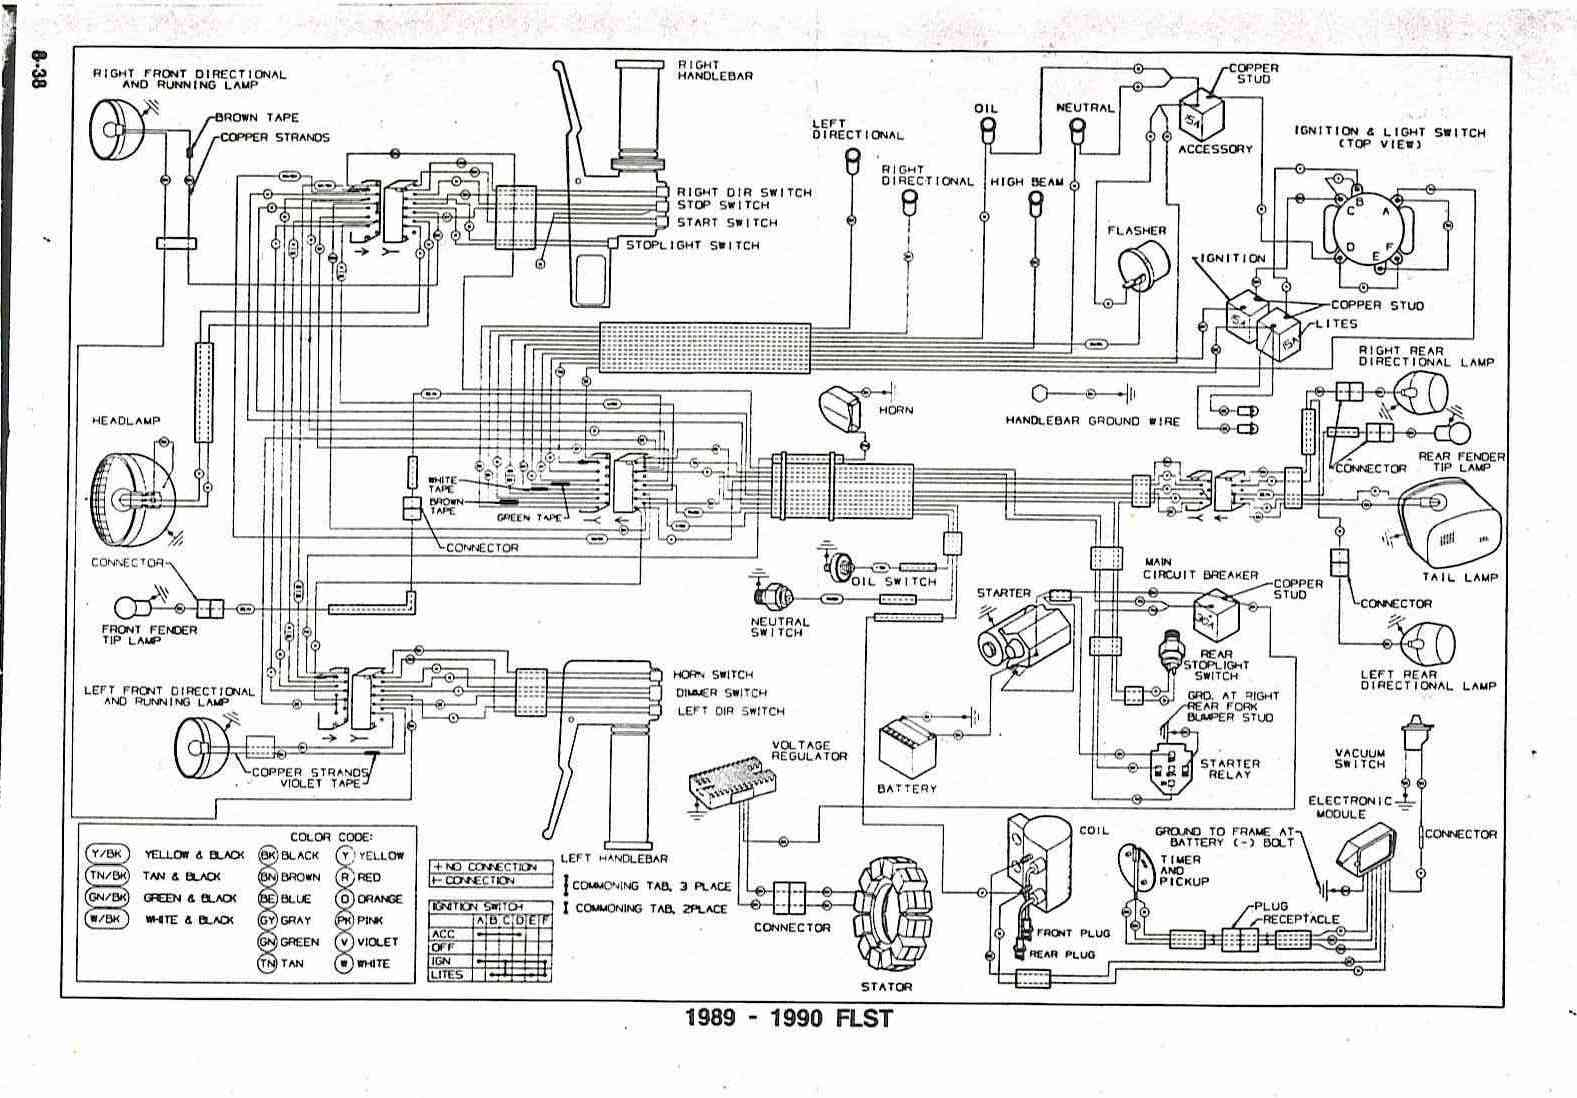 Harley Indicator Wiring Diagram : My photo gallery harley davidson wiring diagram